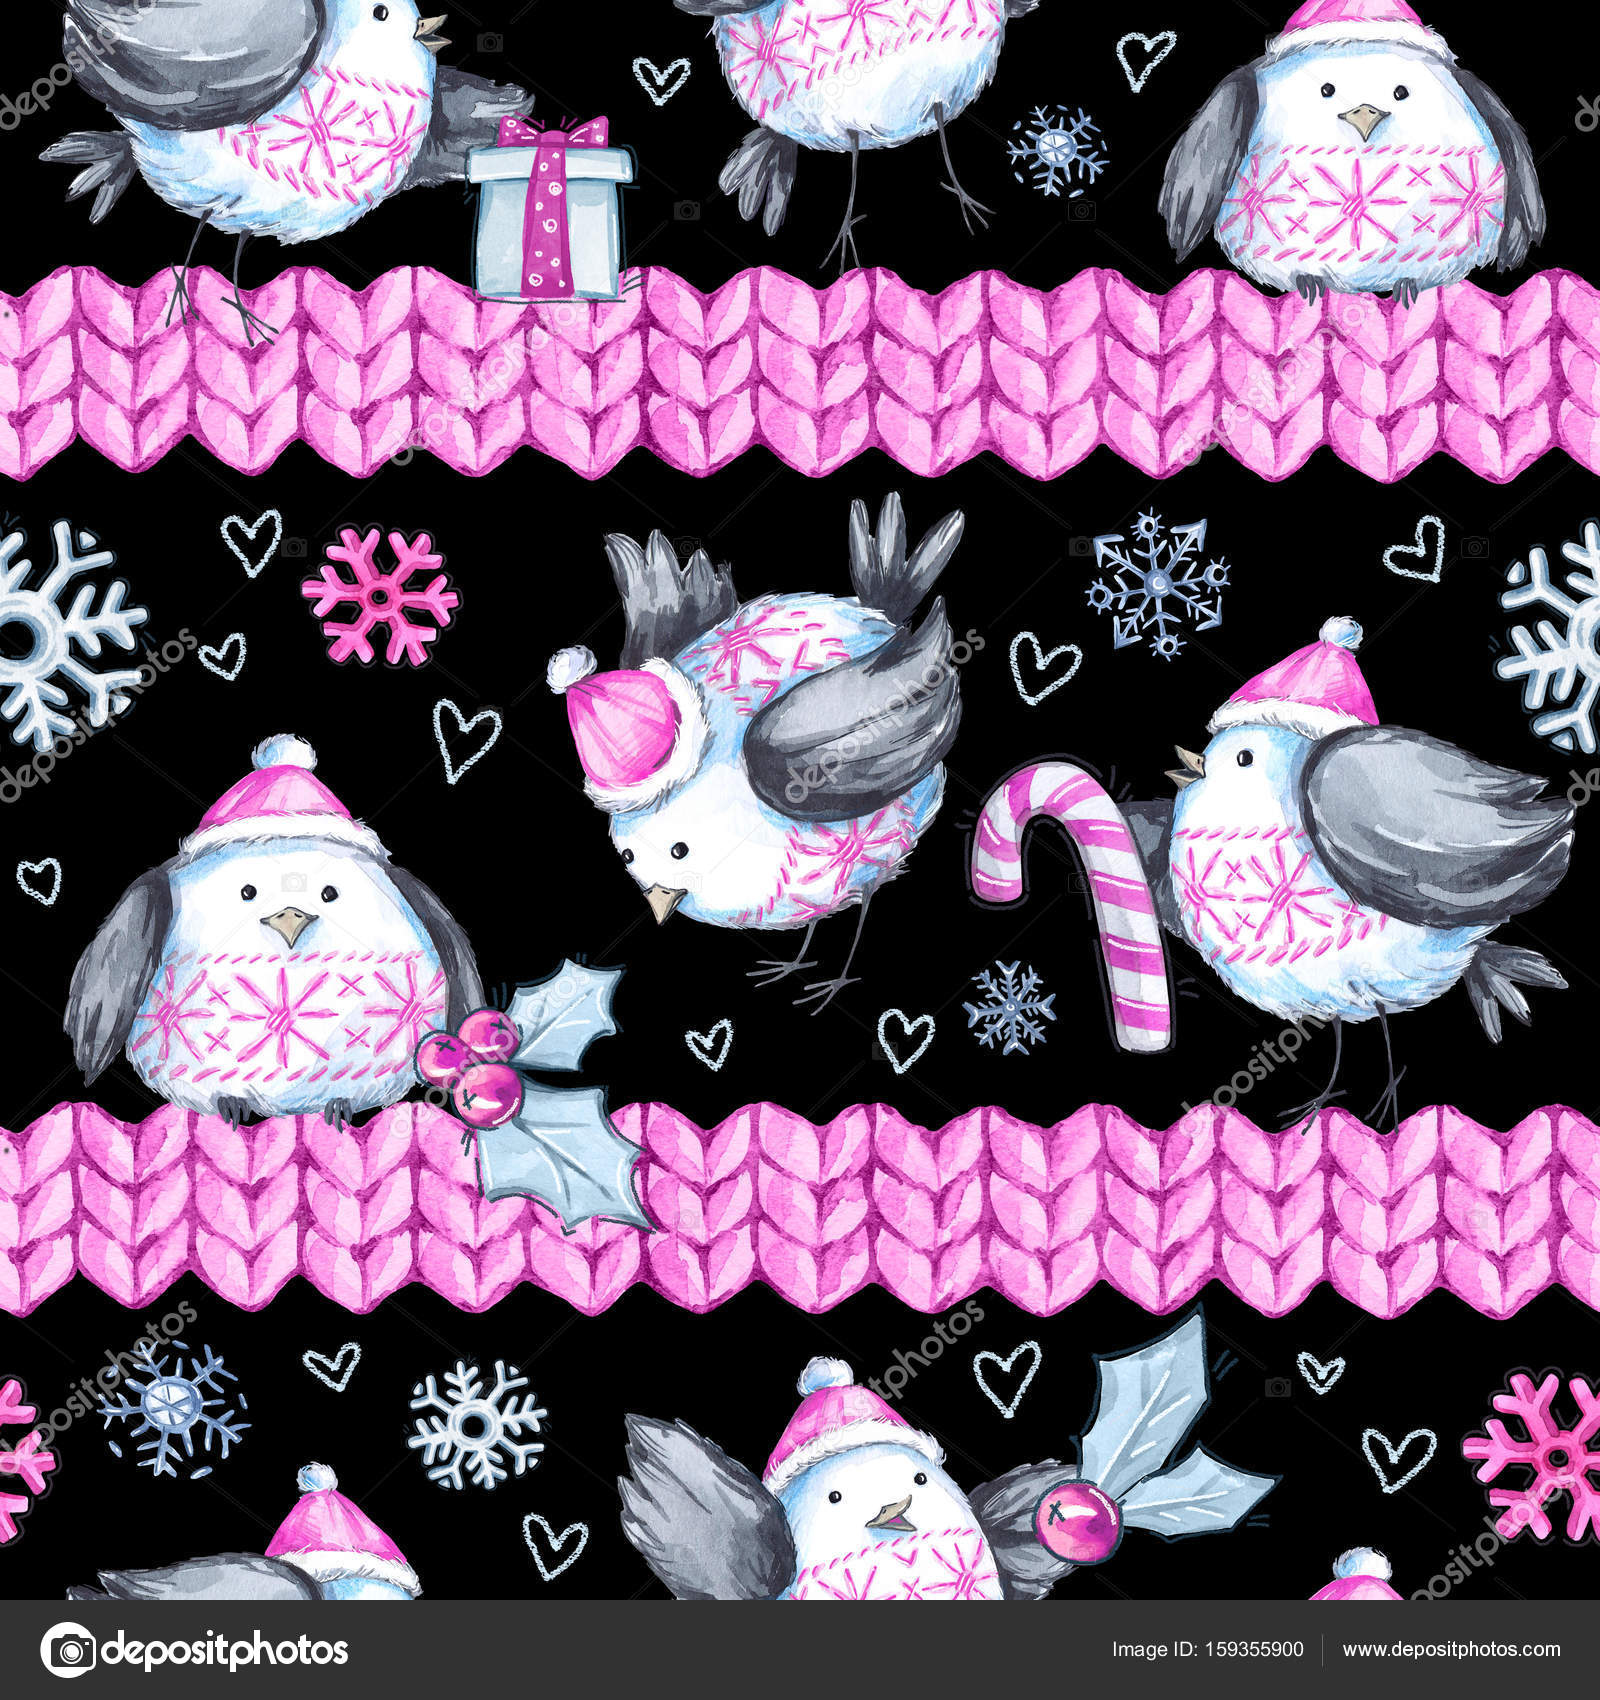 watercolor seamless greeting pattern with cute flying birds and knitted borders new year celebration